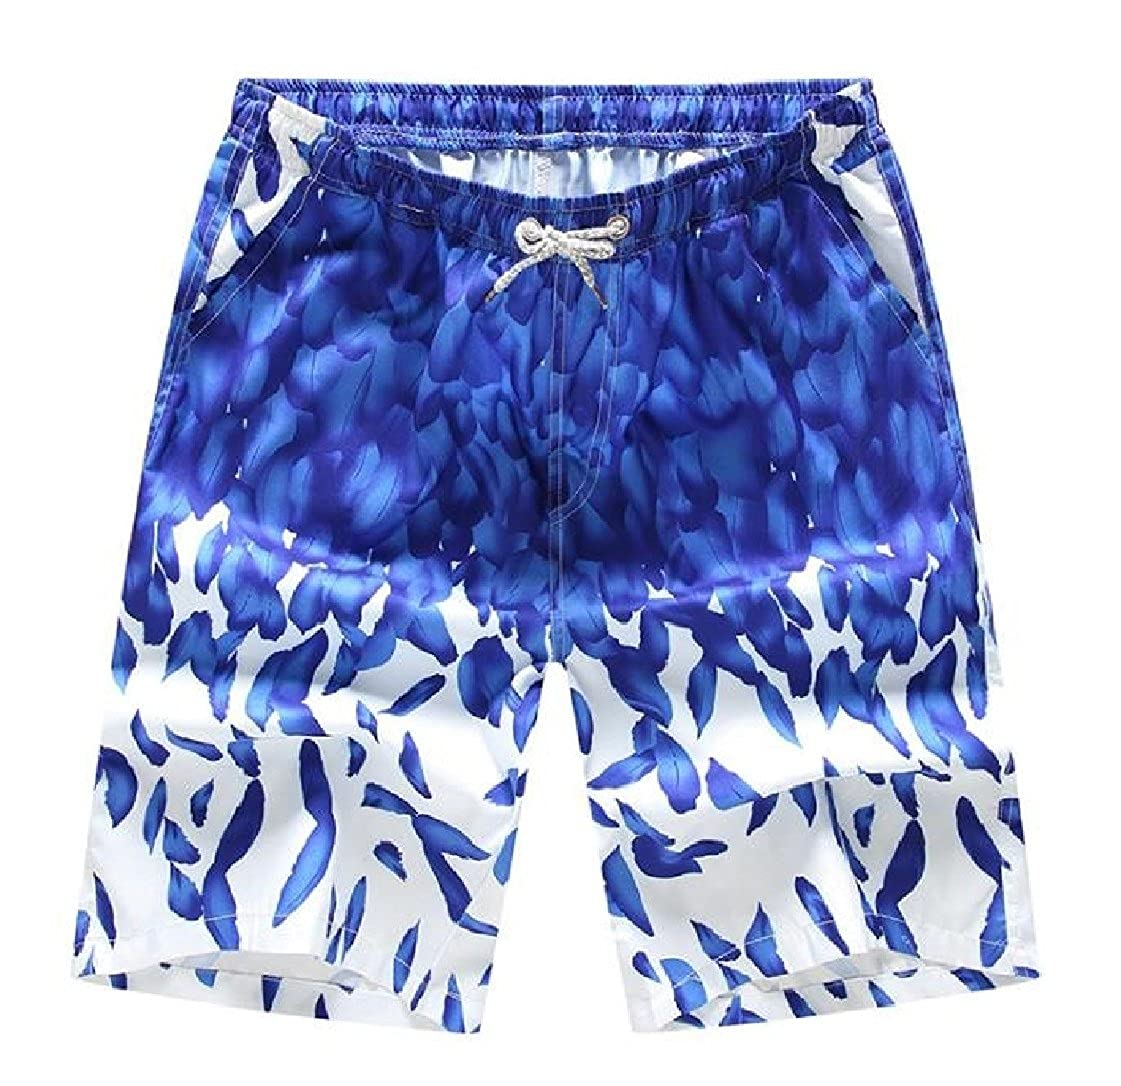 Fieer Mens Cozy Fast Dry Leisure Beachwear Board Shorts Hawaiian Shorts Pants